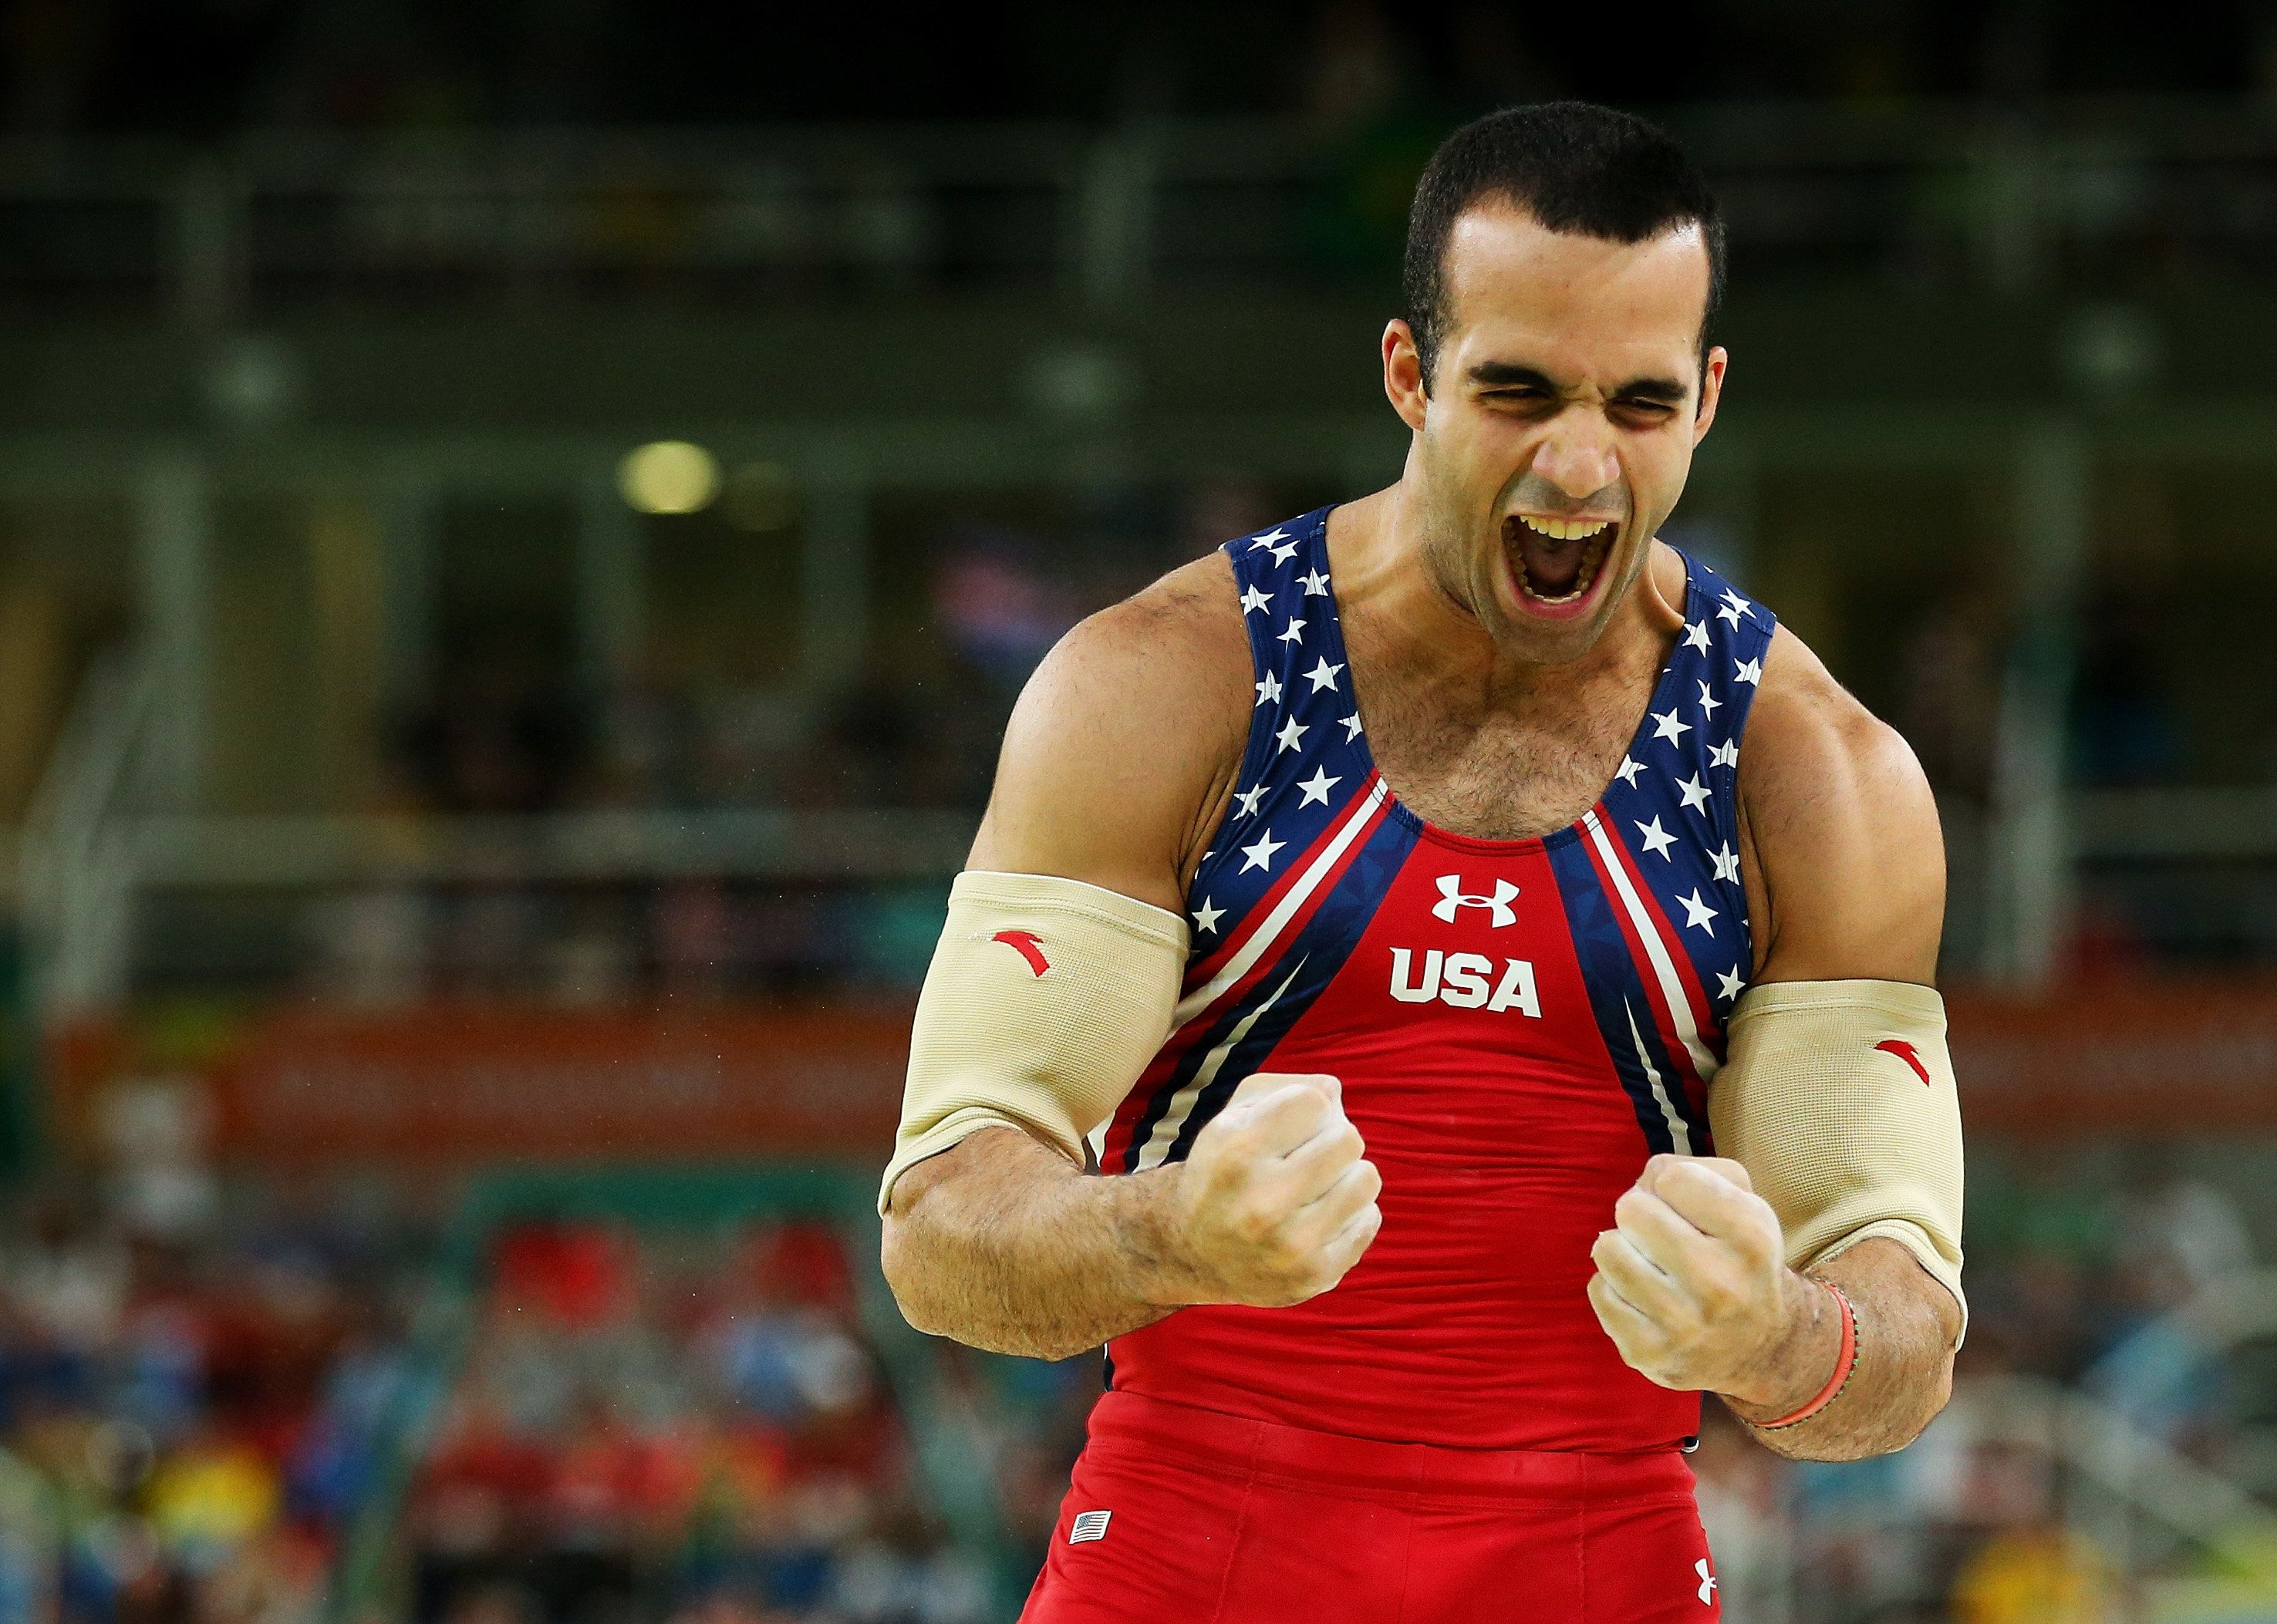 RIO DE JANEIRO, BRAZIL - AUGUST 08:  Danell Leyva of the United States celebrates after competing the parallel bars during the men's team final on Day 3 of the Rio 2016 Olympic Games at the Rio Olympic Arena on August 8, 2016 in Rio de Janeiro, Brazil.  (Photo by Alex Livesey/Getty Images)